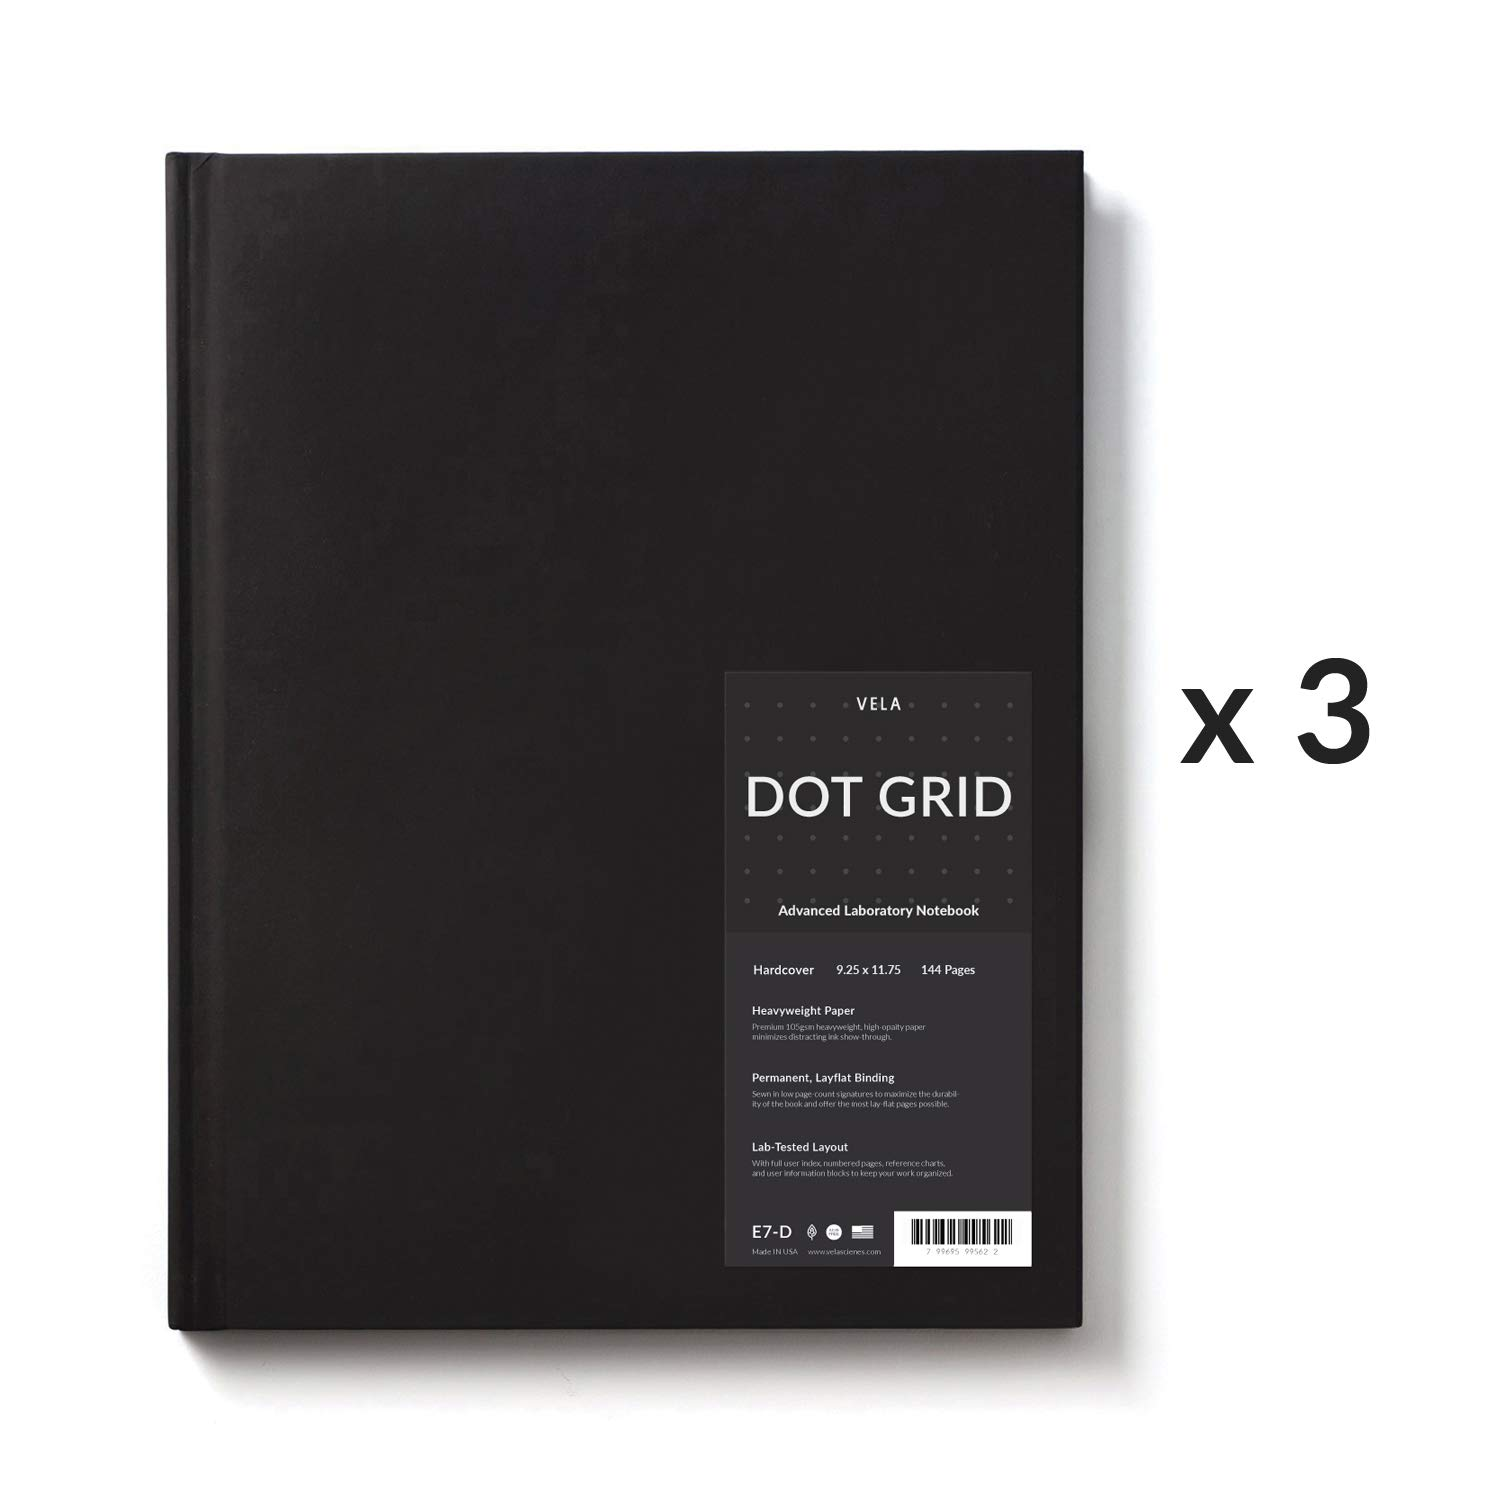 Vela Sciences Advanced Hardcover Lab Notebook 9.25 x 11.75 inches 144 Pages 3-Pack, Dot Grid